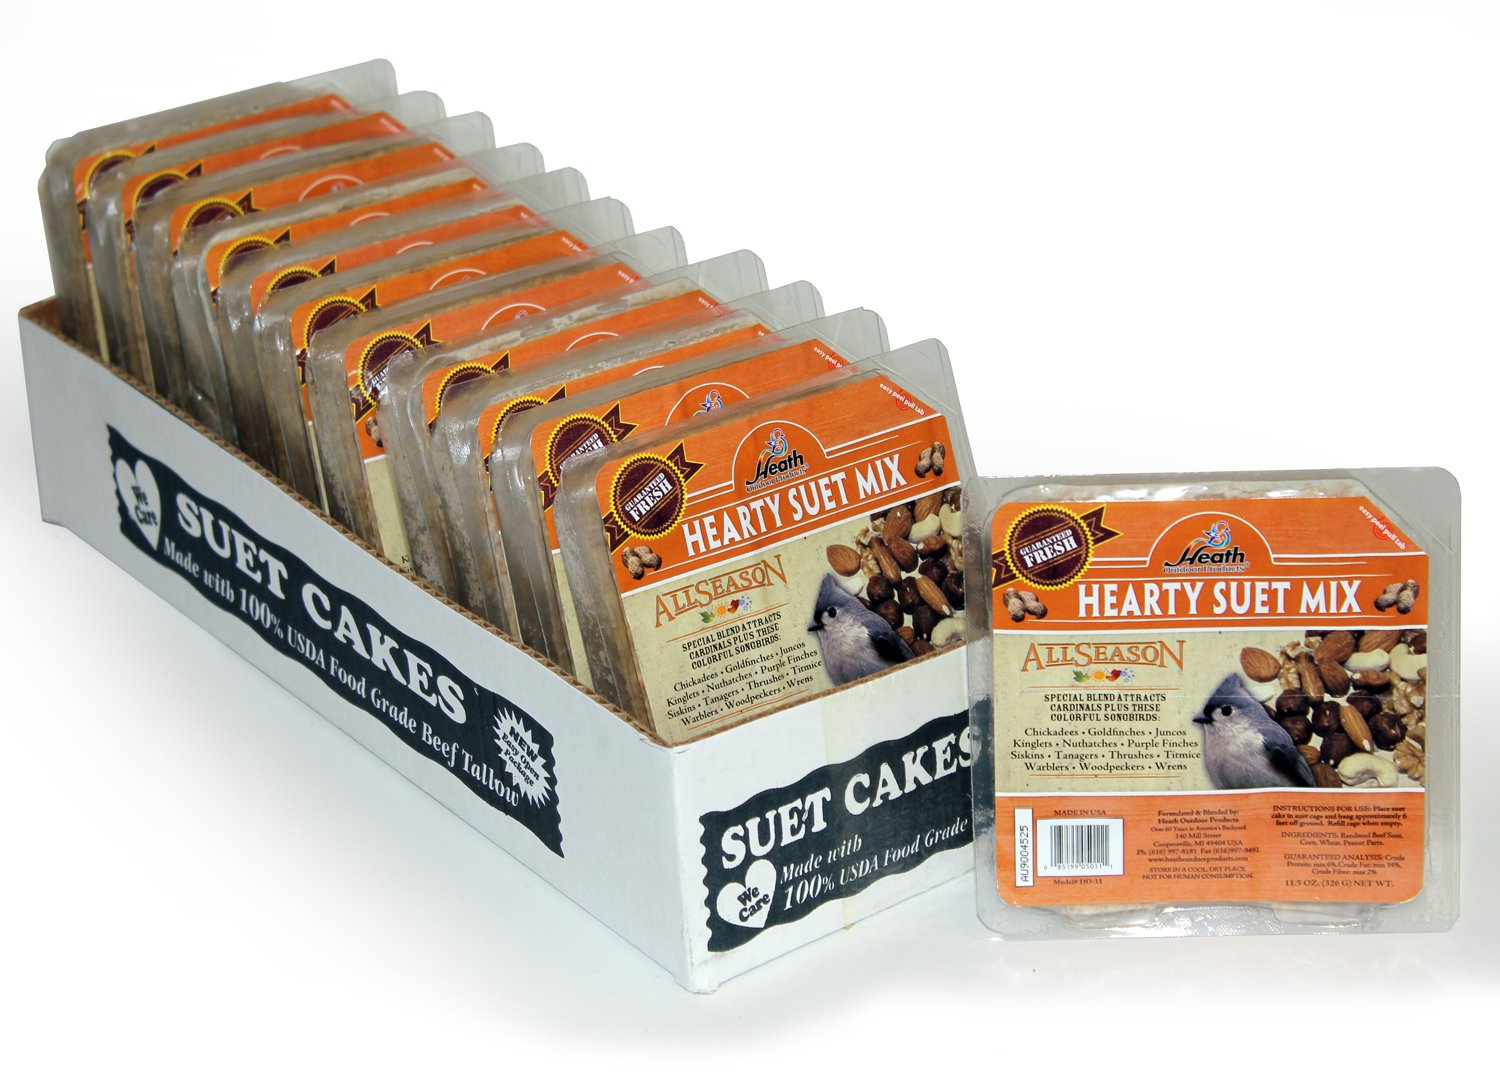 Heath Outdoor Products DD-11 Hearty Suet Mix Cake, Case Of 12 by Heath Outdoor Products